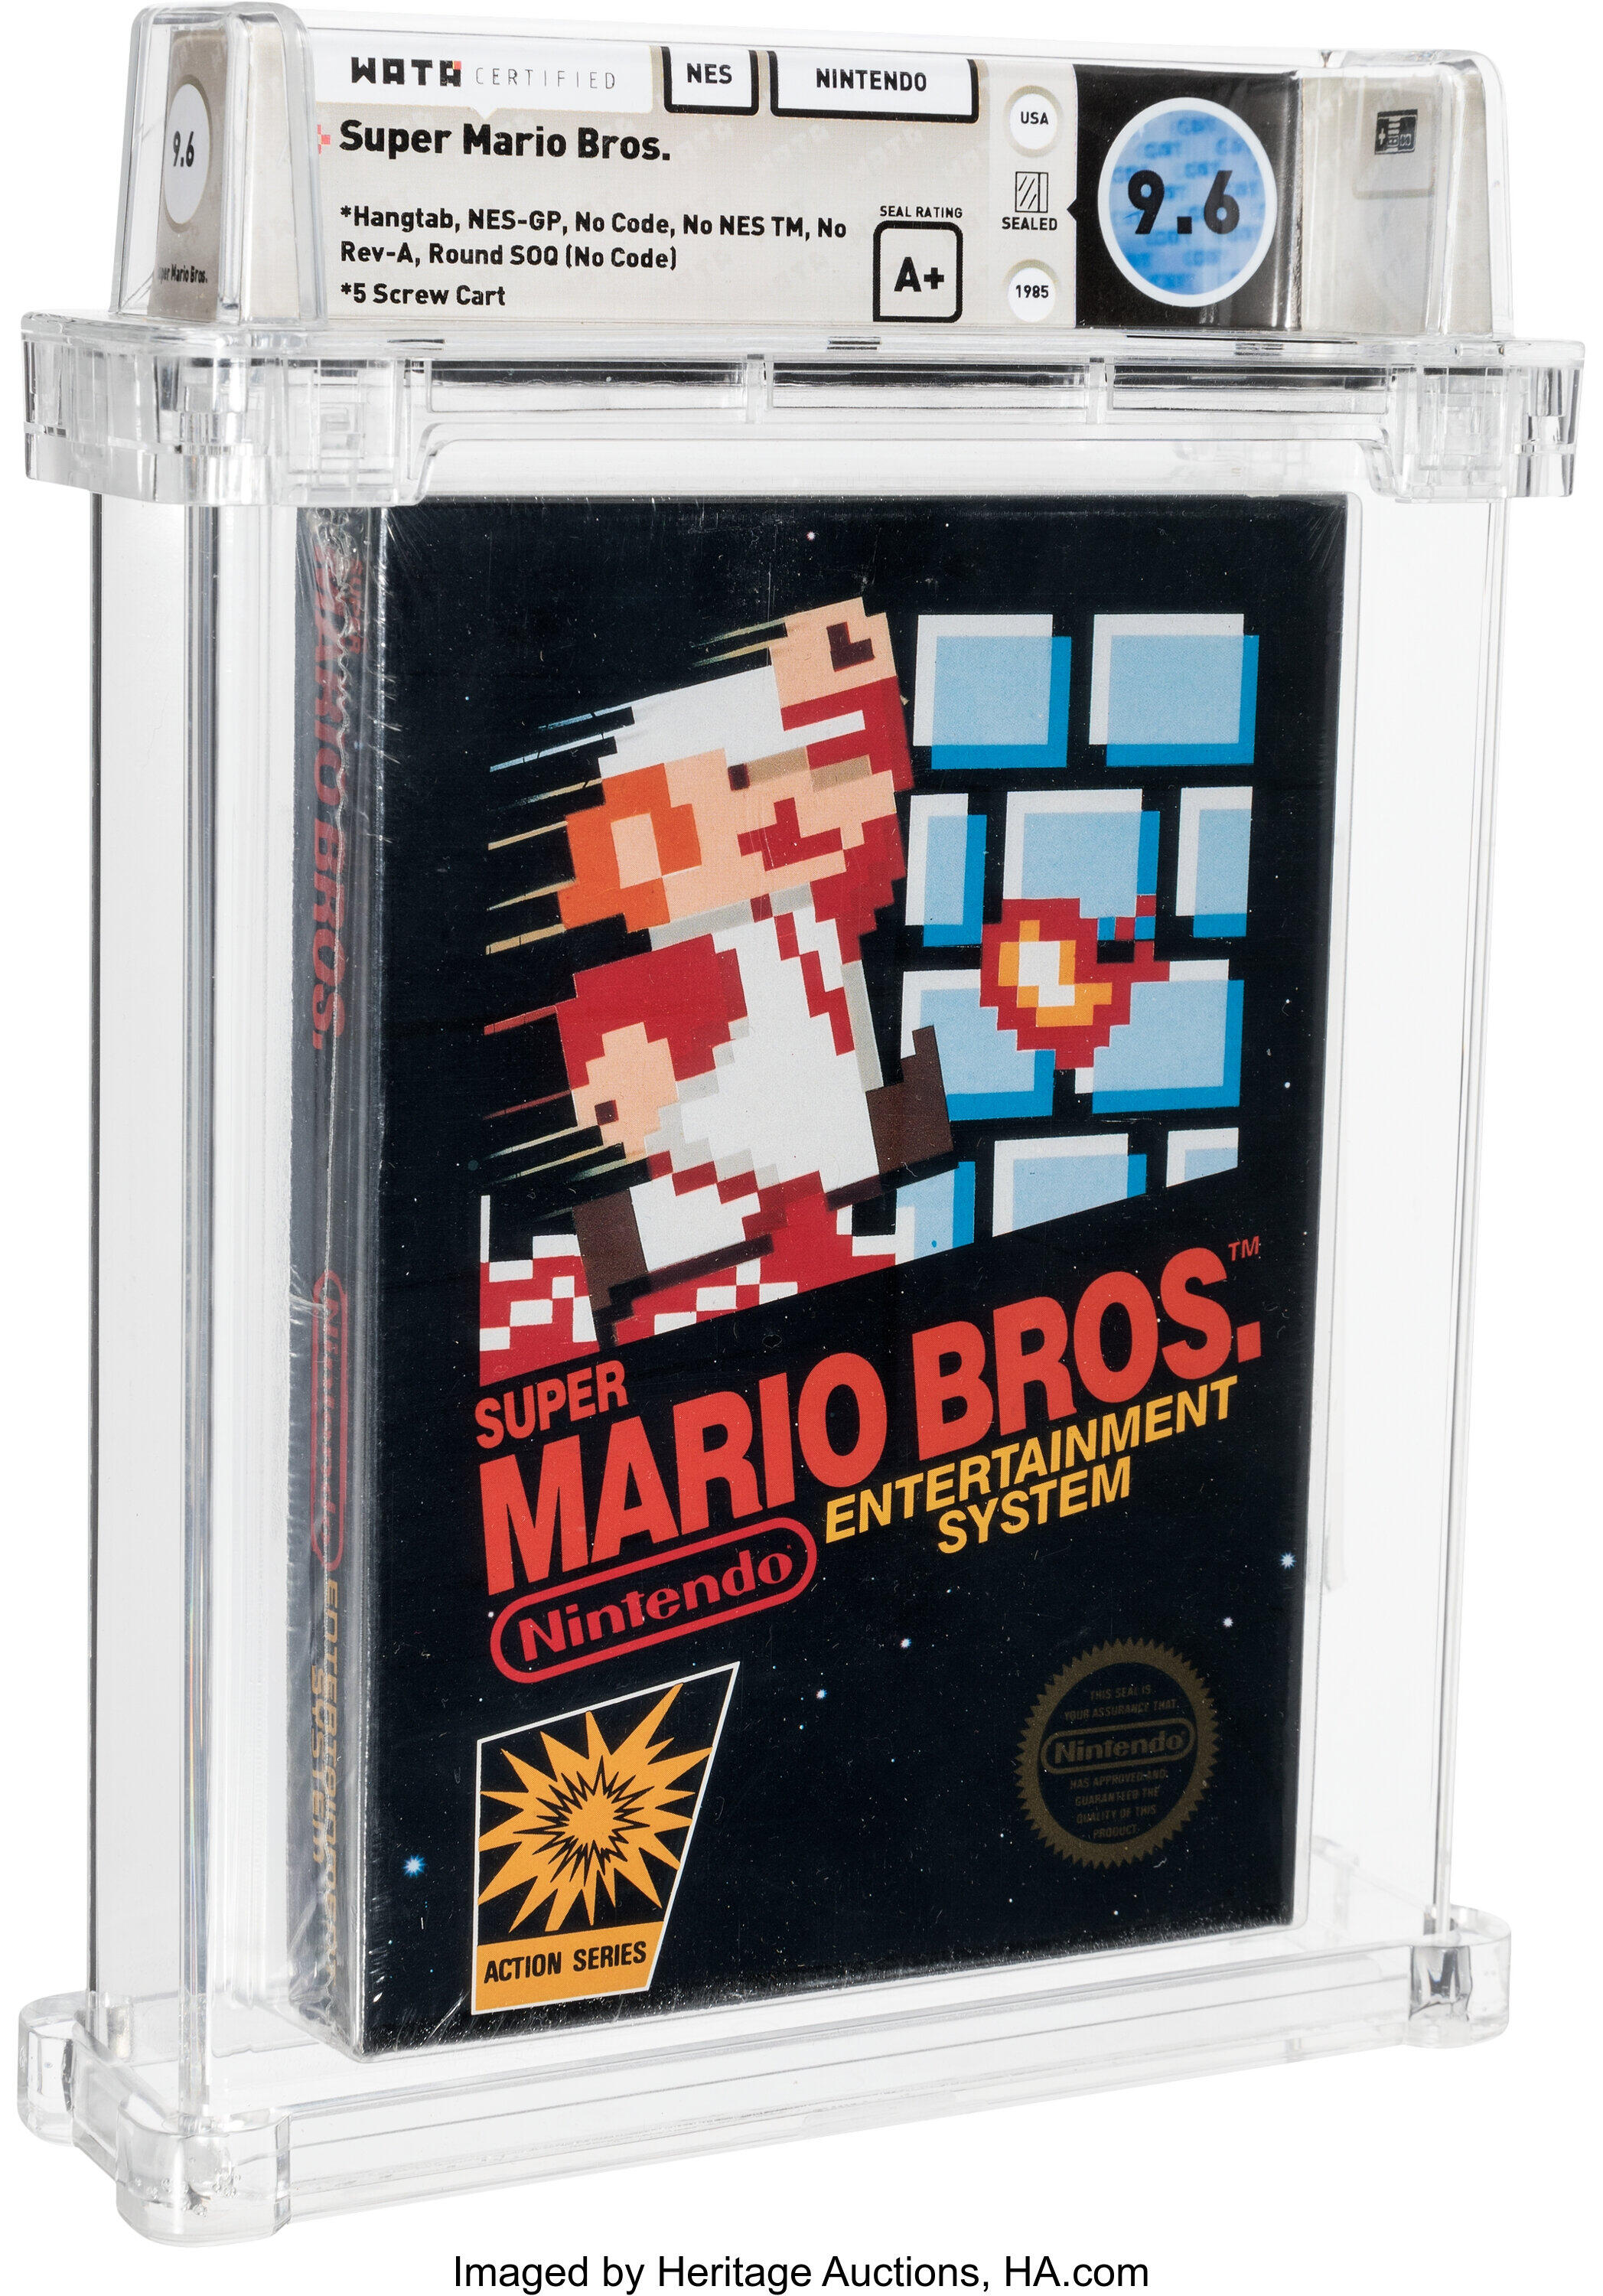 <p>Super Mario Bros. auction breaks record with $660K sale thumbnail